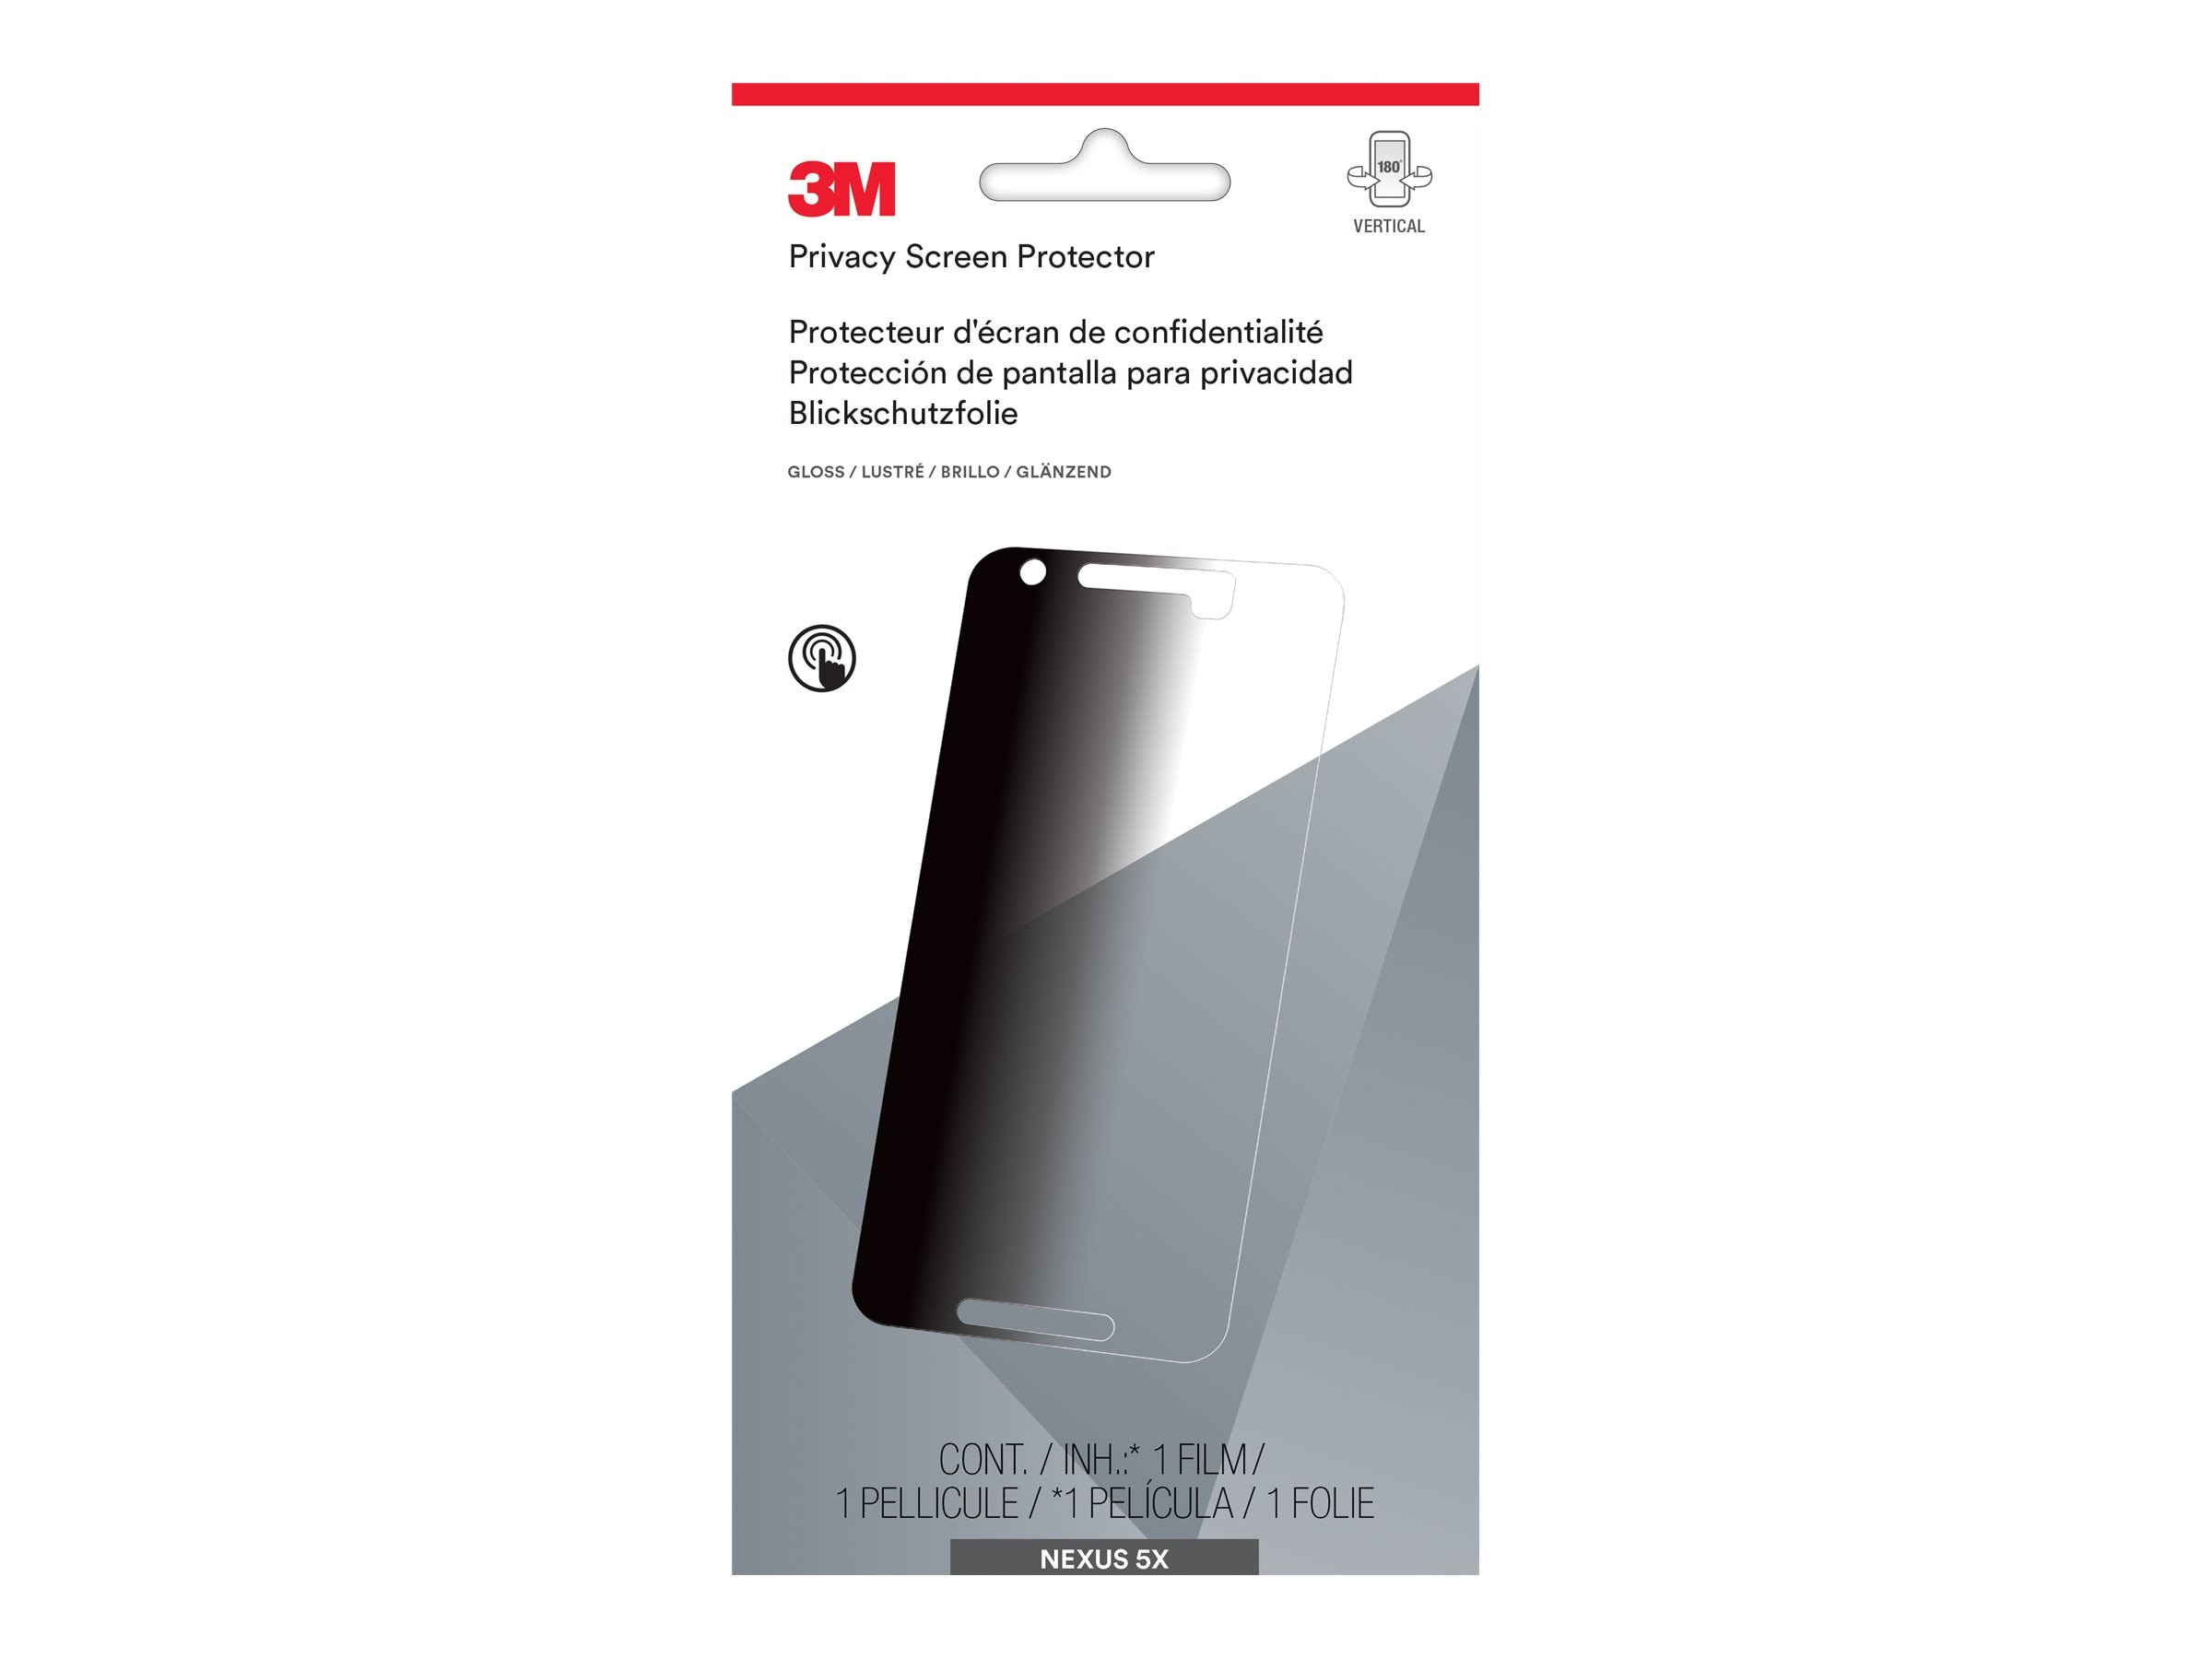 3M Privacy Screen Protector for Nexus 5x